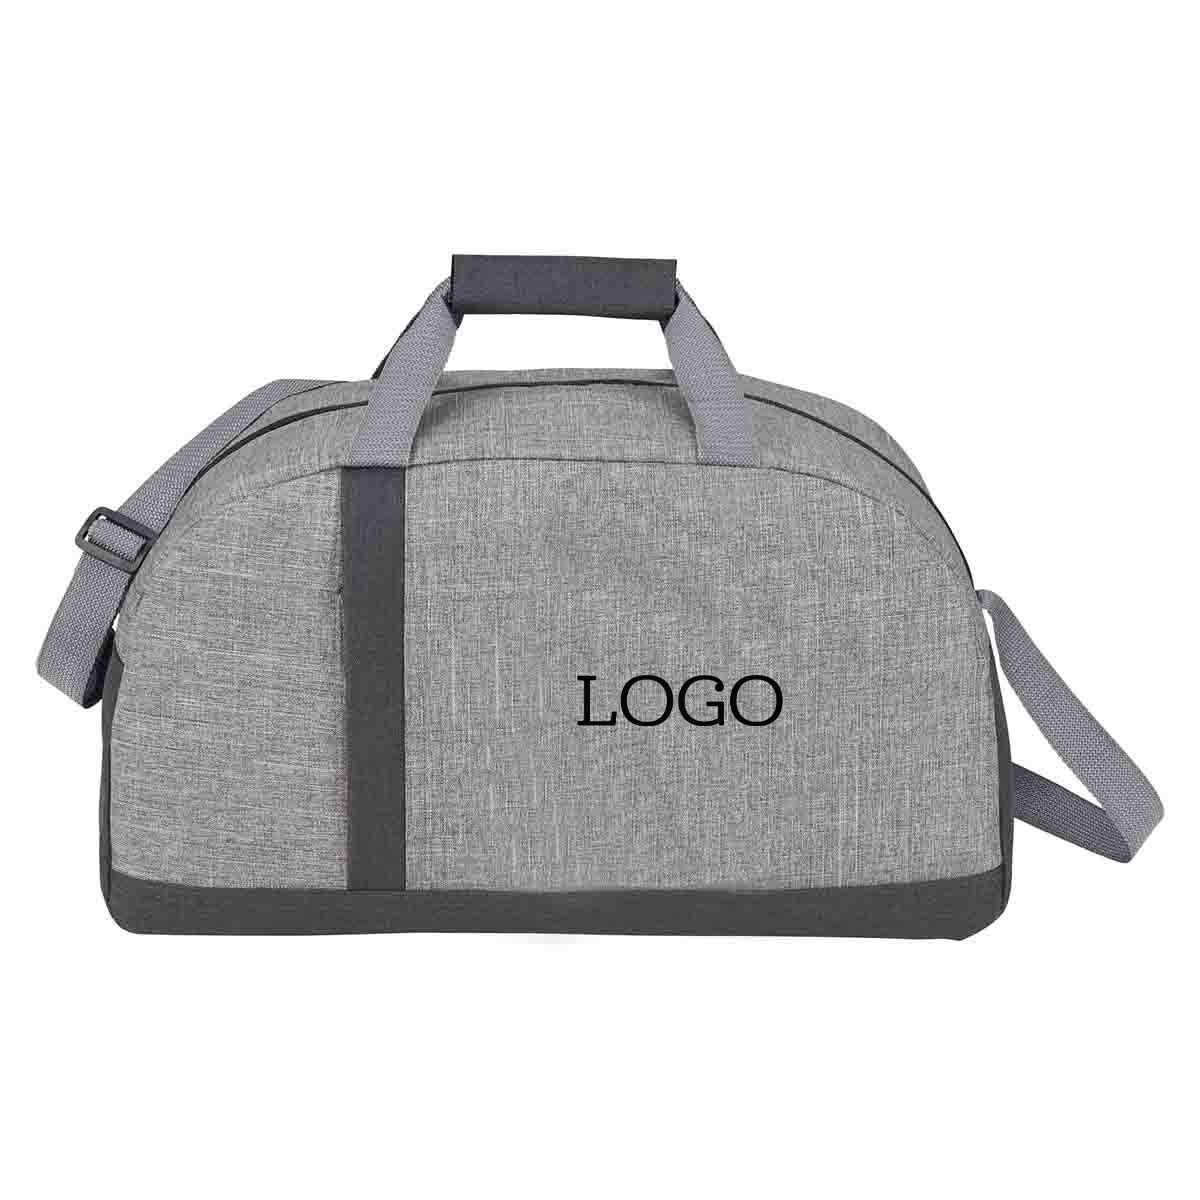 250682 merit recycled duffel one color imprint one location